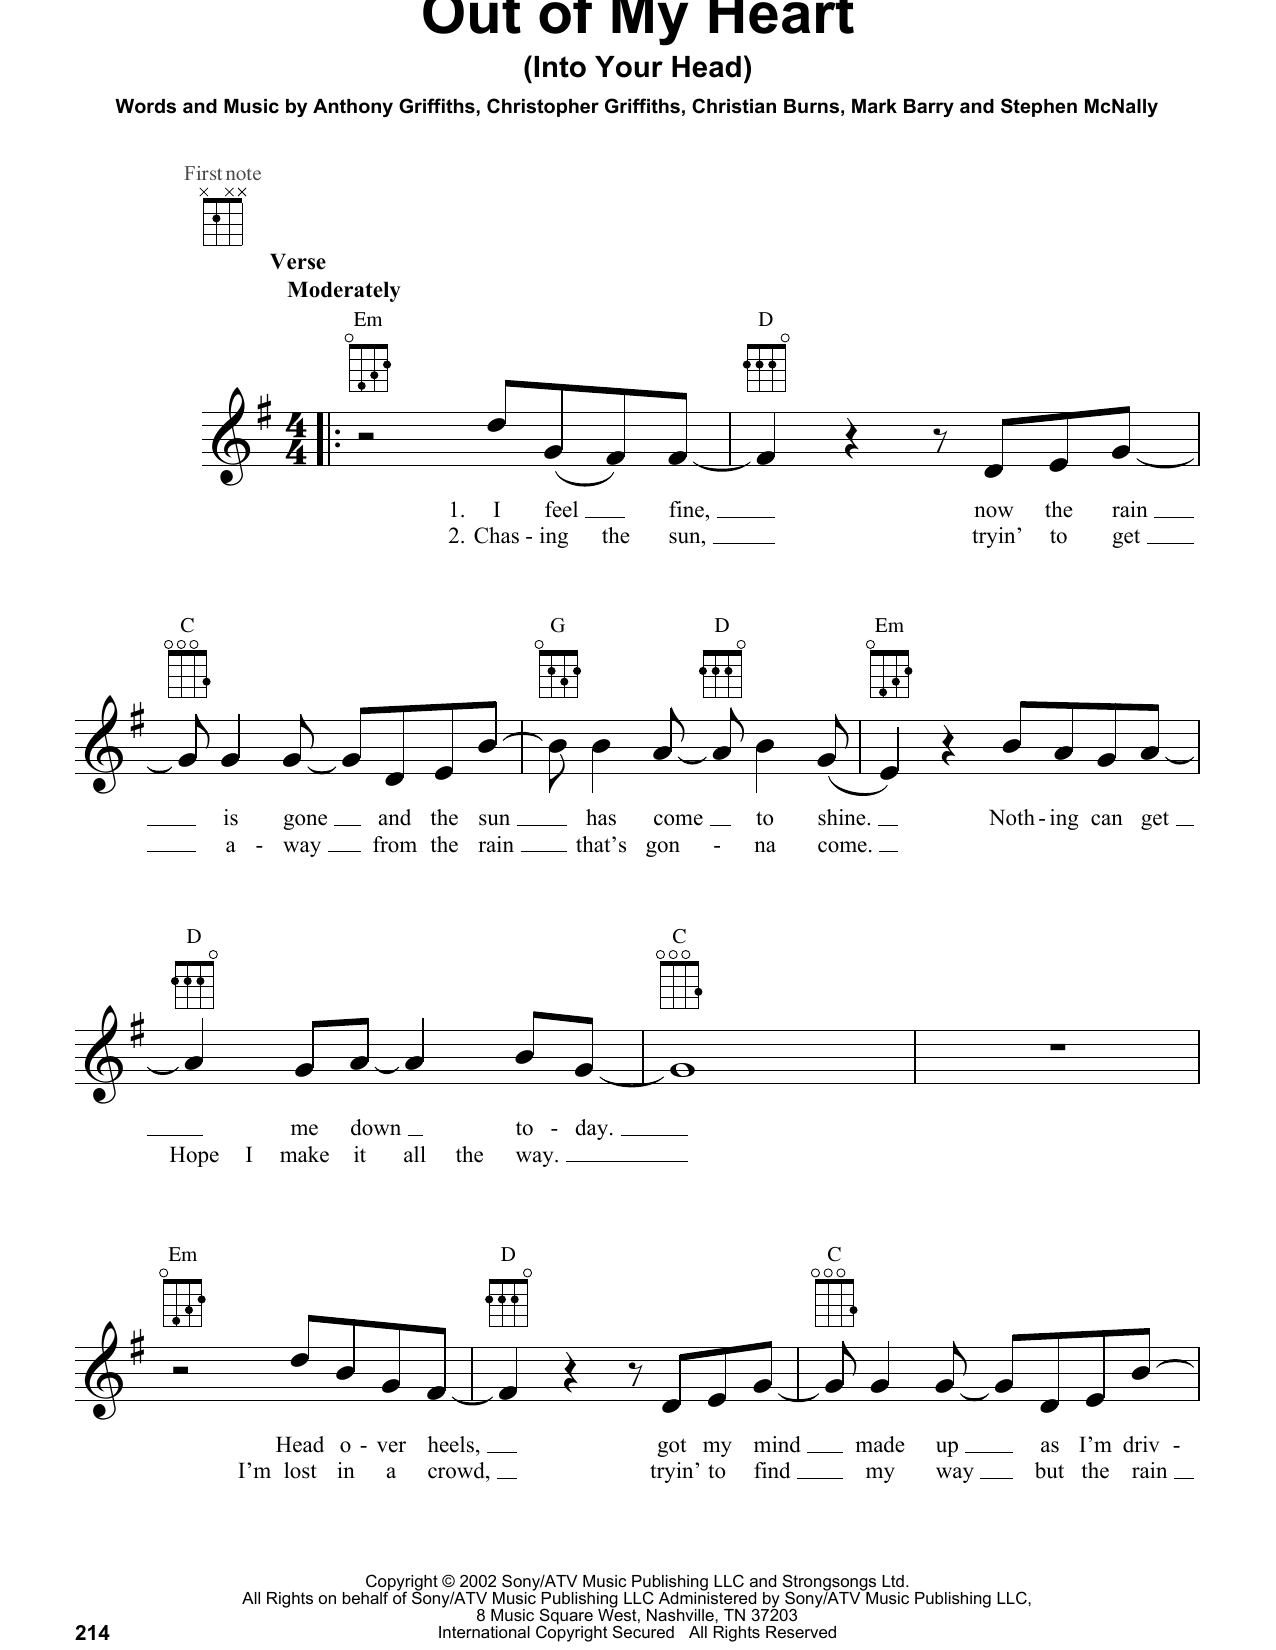 Out Of My Heart (Into Your Head) Sheet Music